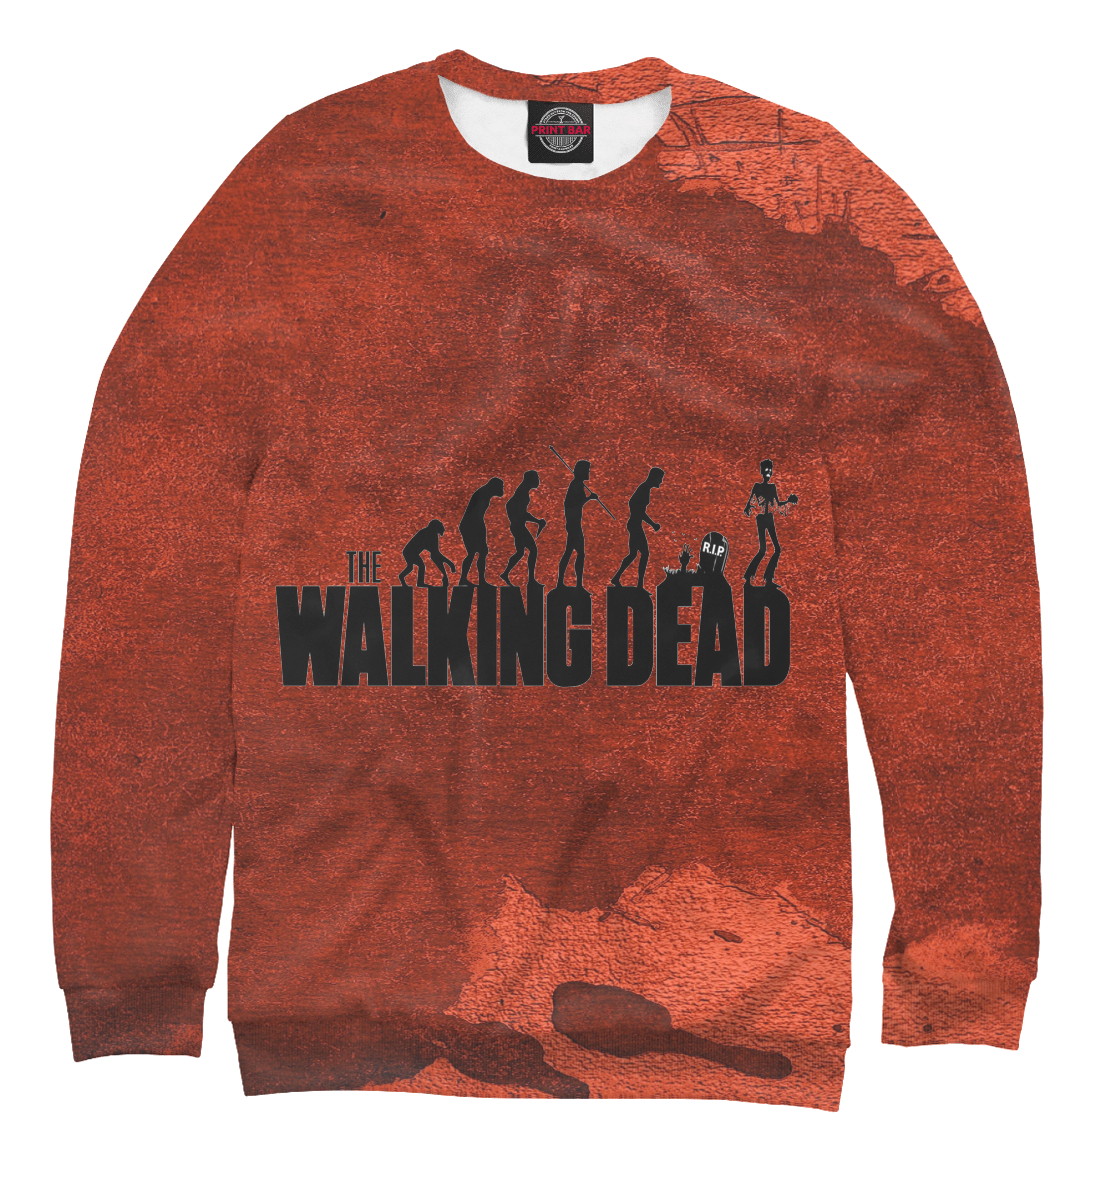 Купить The Walking Dead, Printbar, Свитшоты, HOD-622366-swi-1